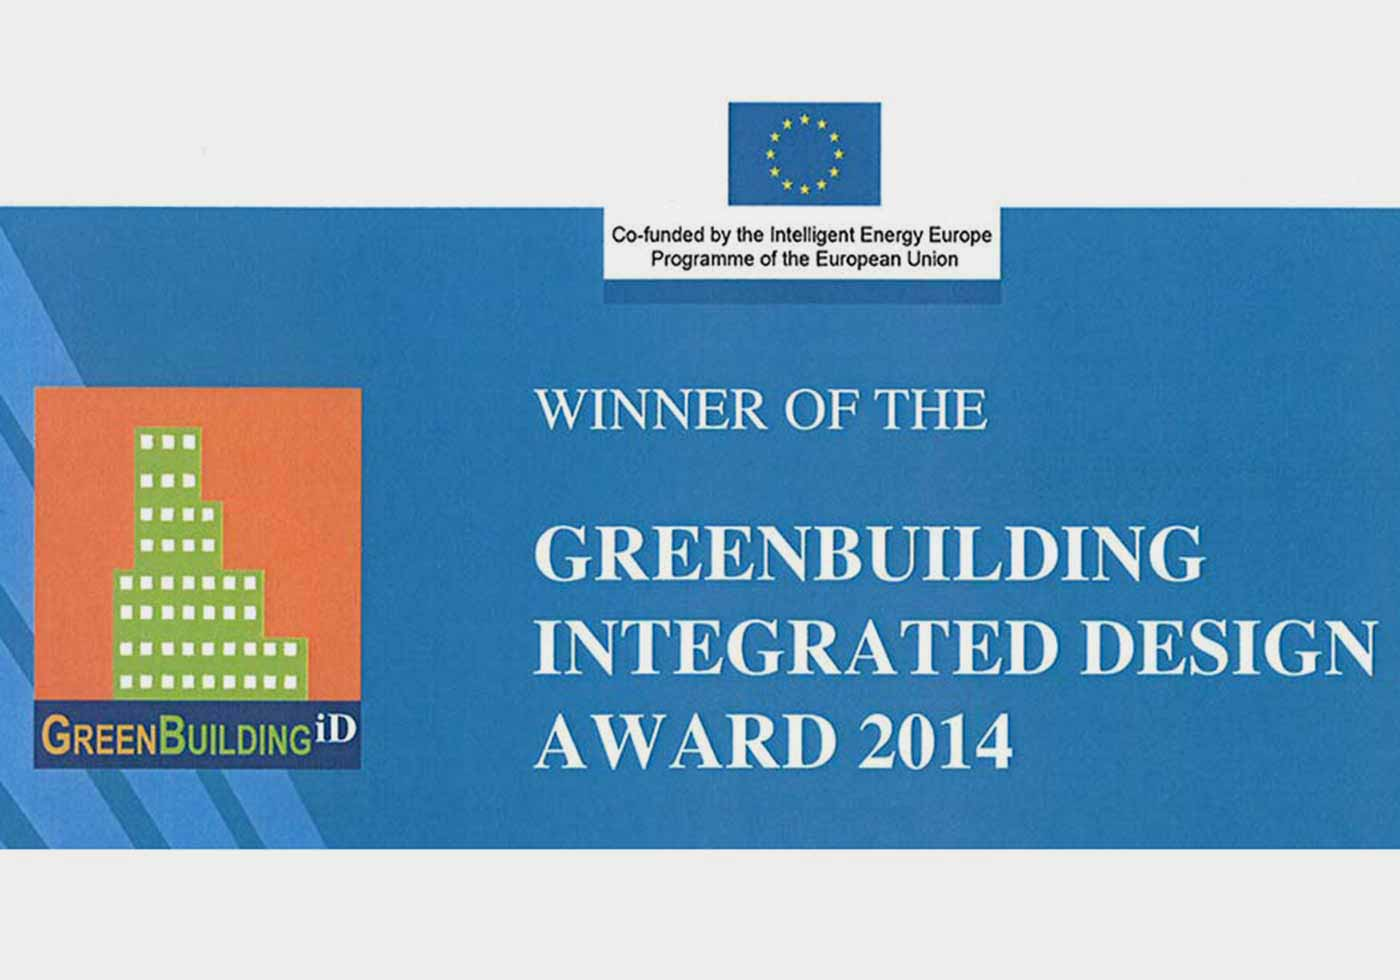 GreenBuilding Integrated Design Award (EU) 2014